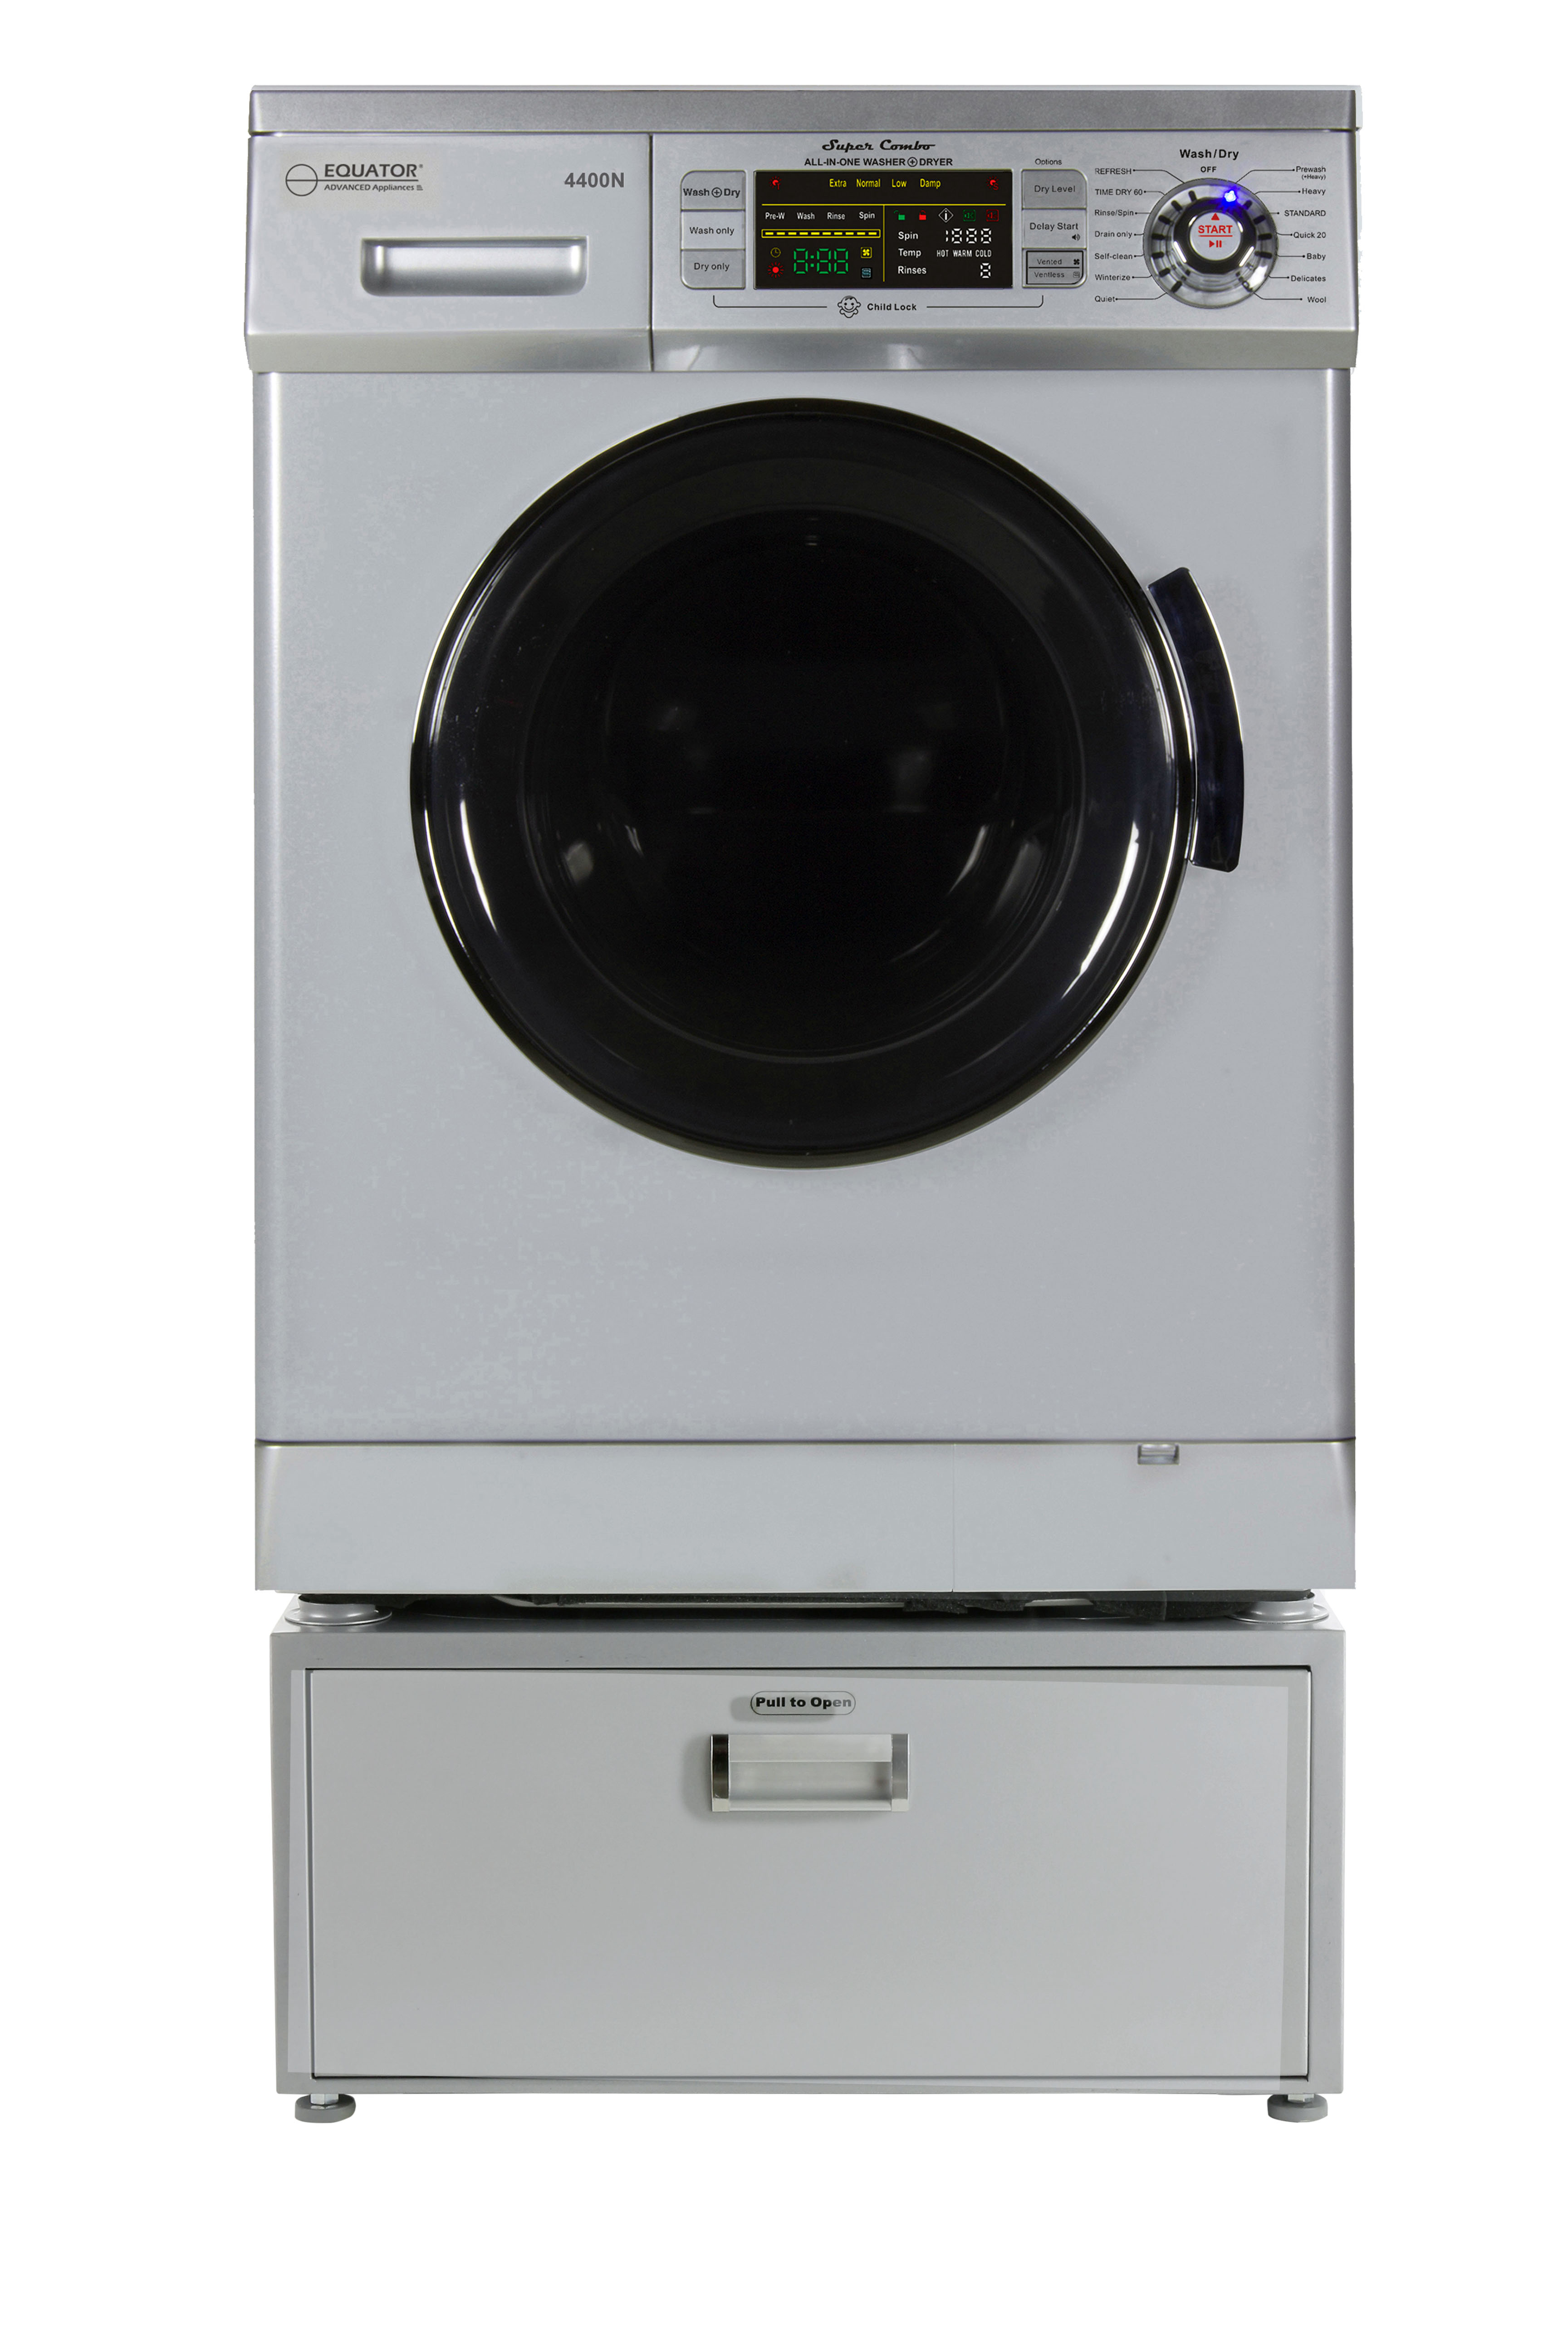 Equator EZ 4400 N Silver All-in-one New Compact Combo Washer Dryer with Pedestal Storage Drawer